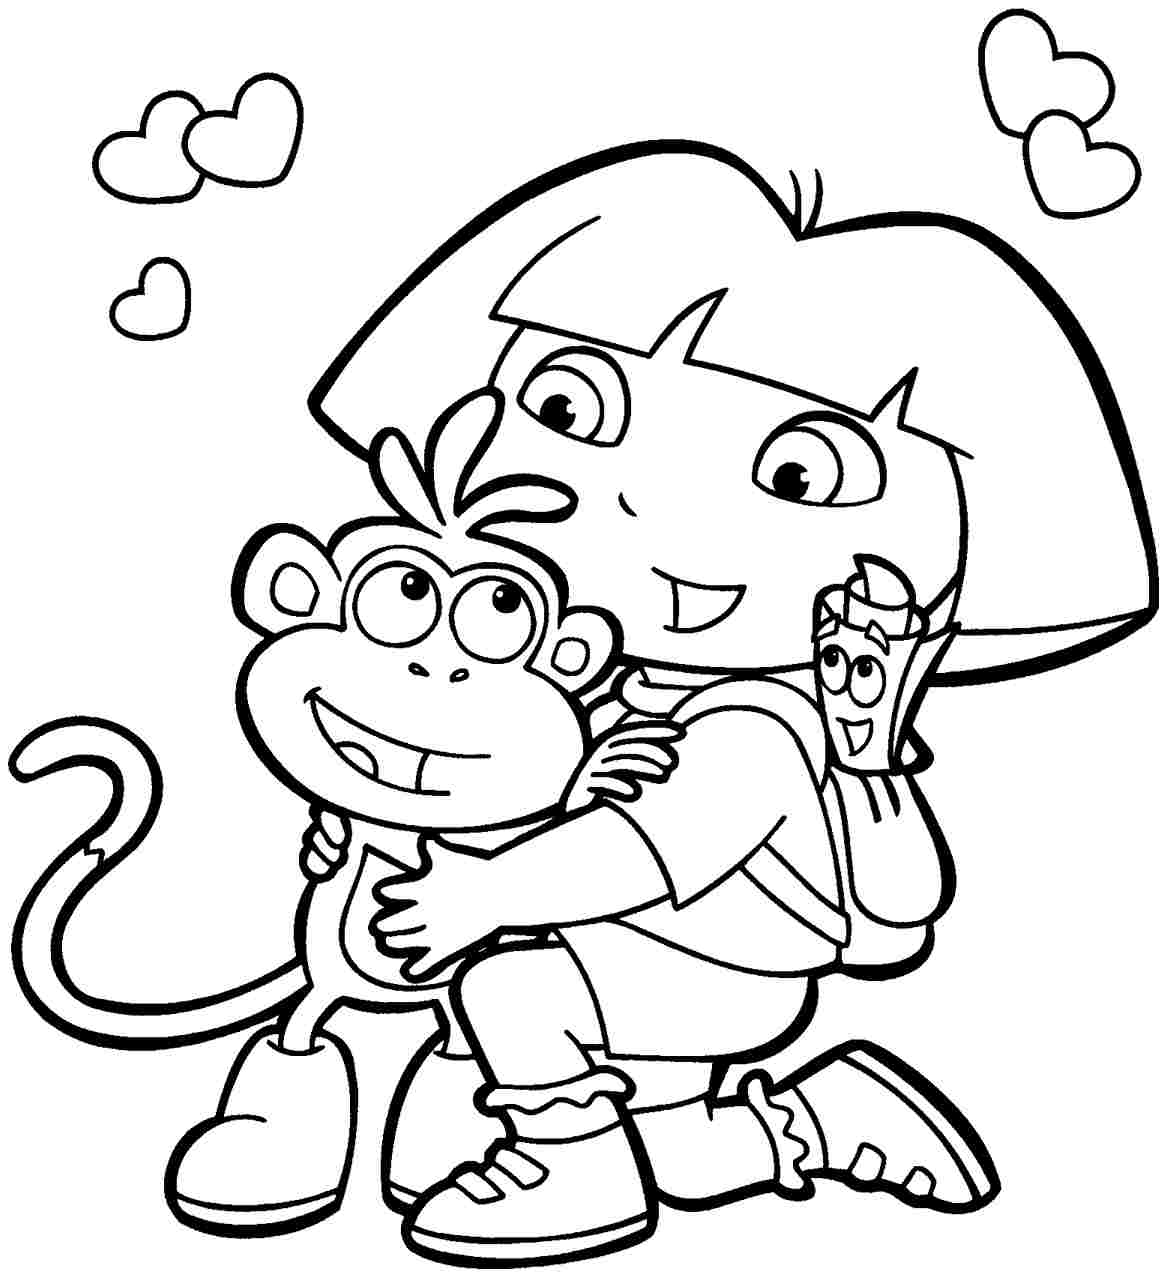 Free Cartoon Coloring Pages Kids Printable Gallery Best Of